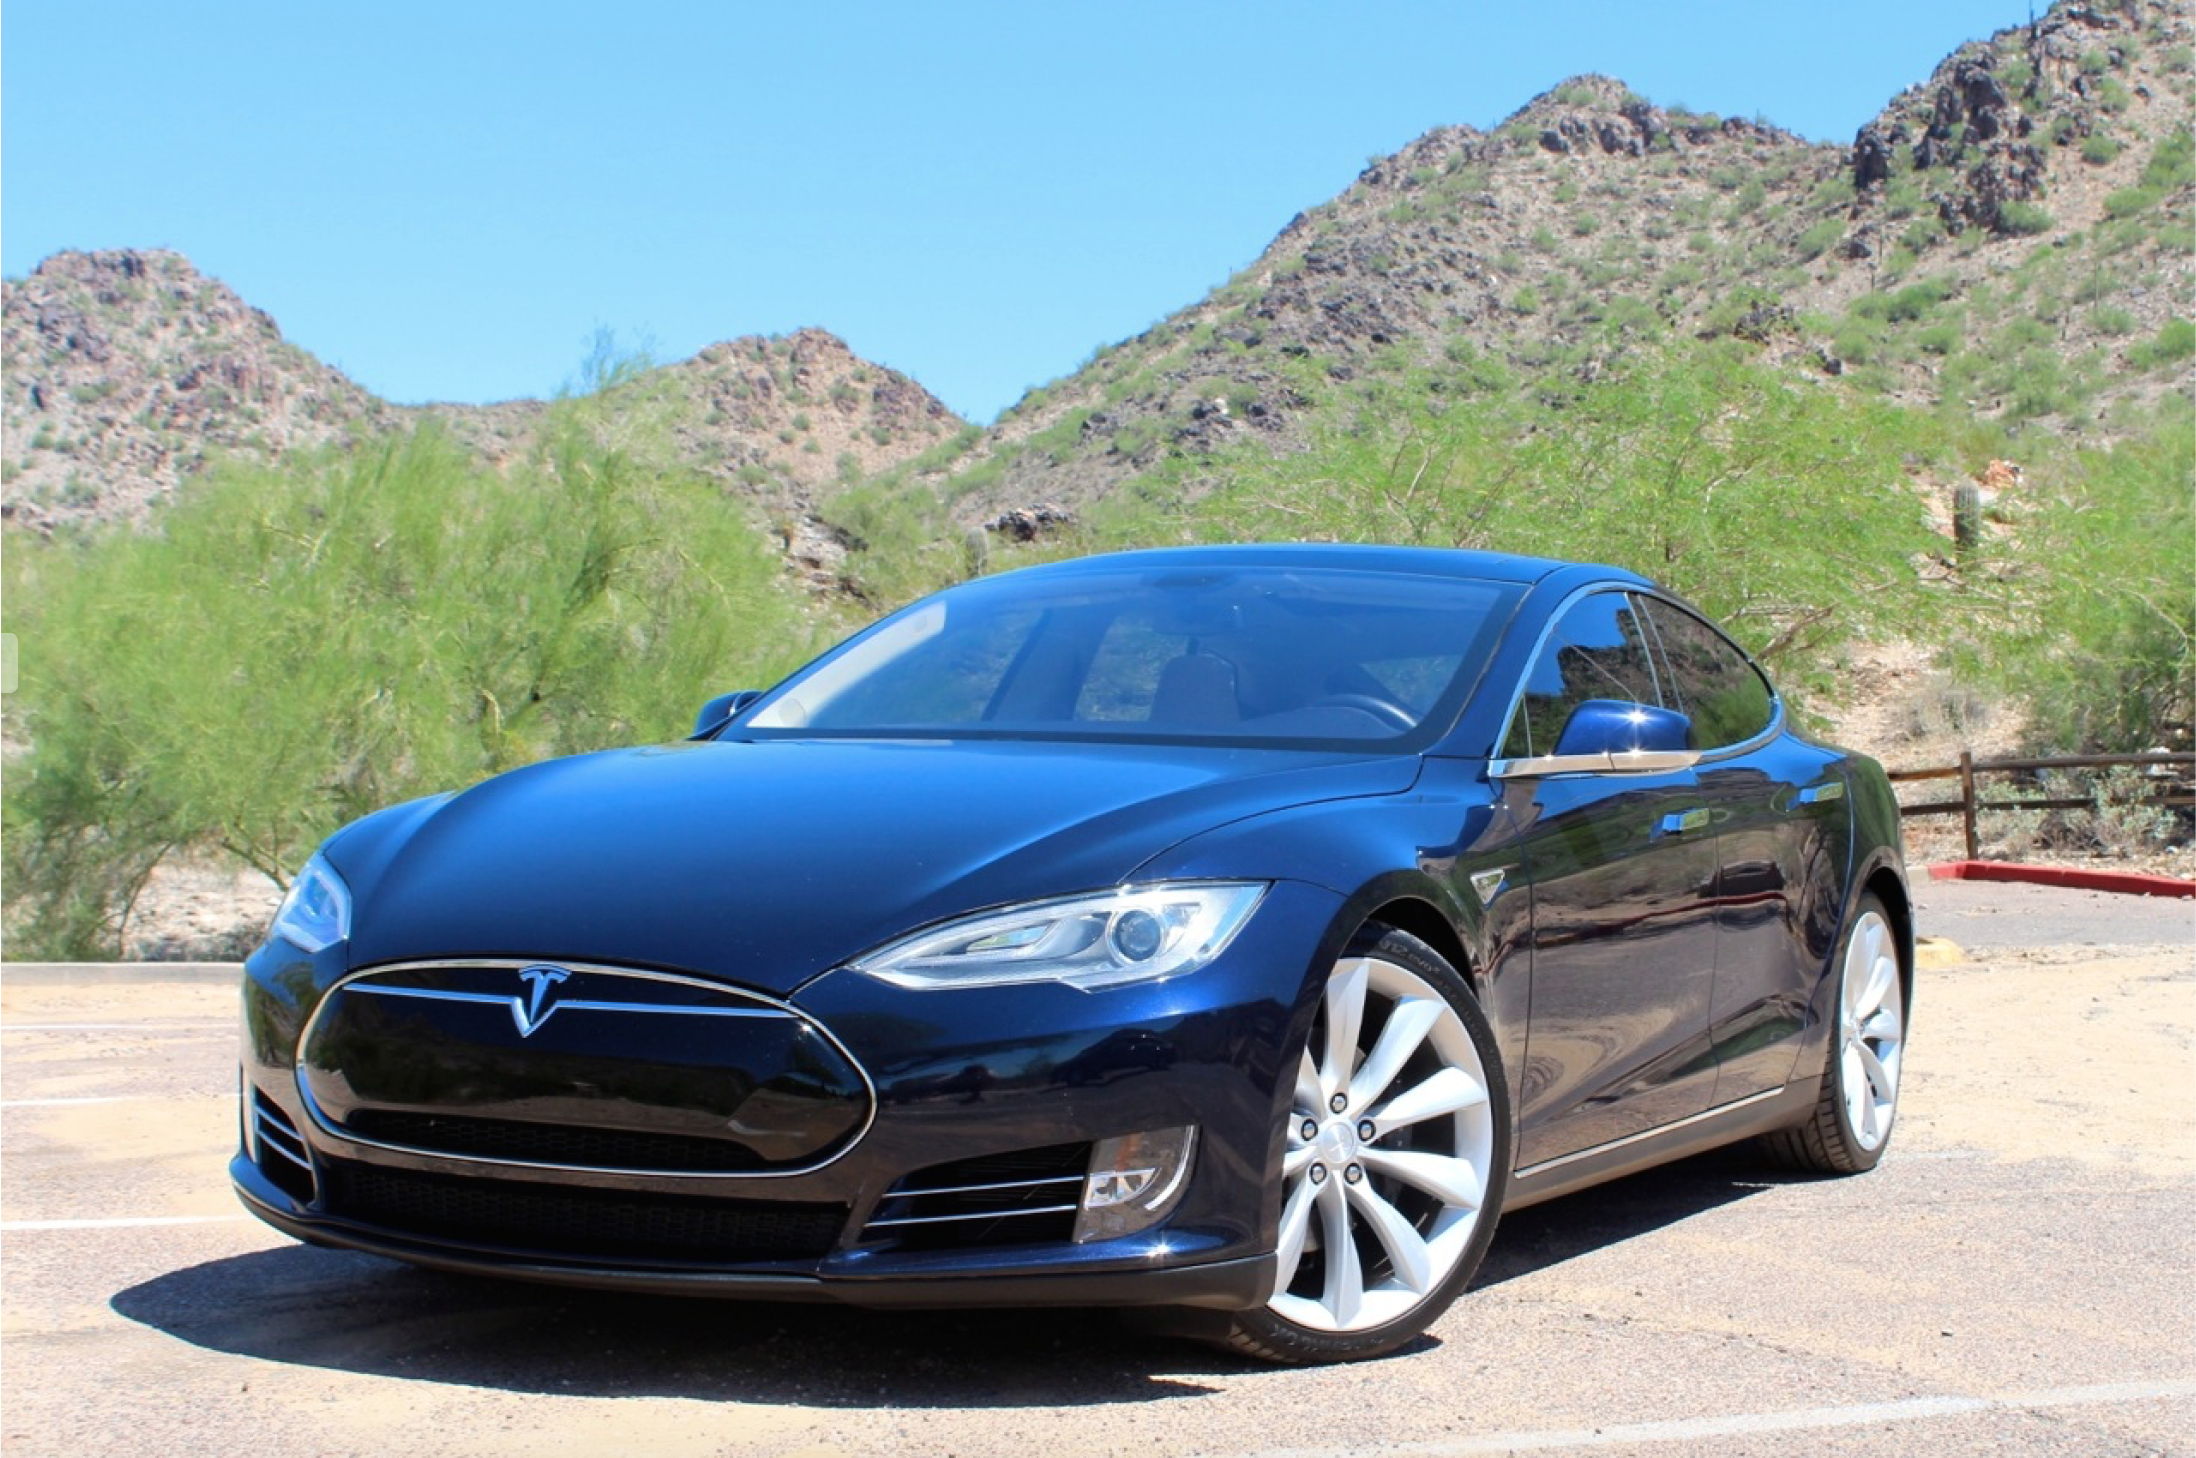 How I Used Abused My Tesla What A Tesla Looks Like After